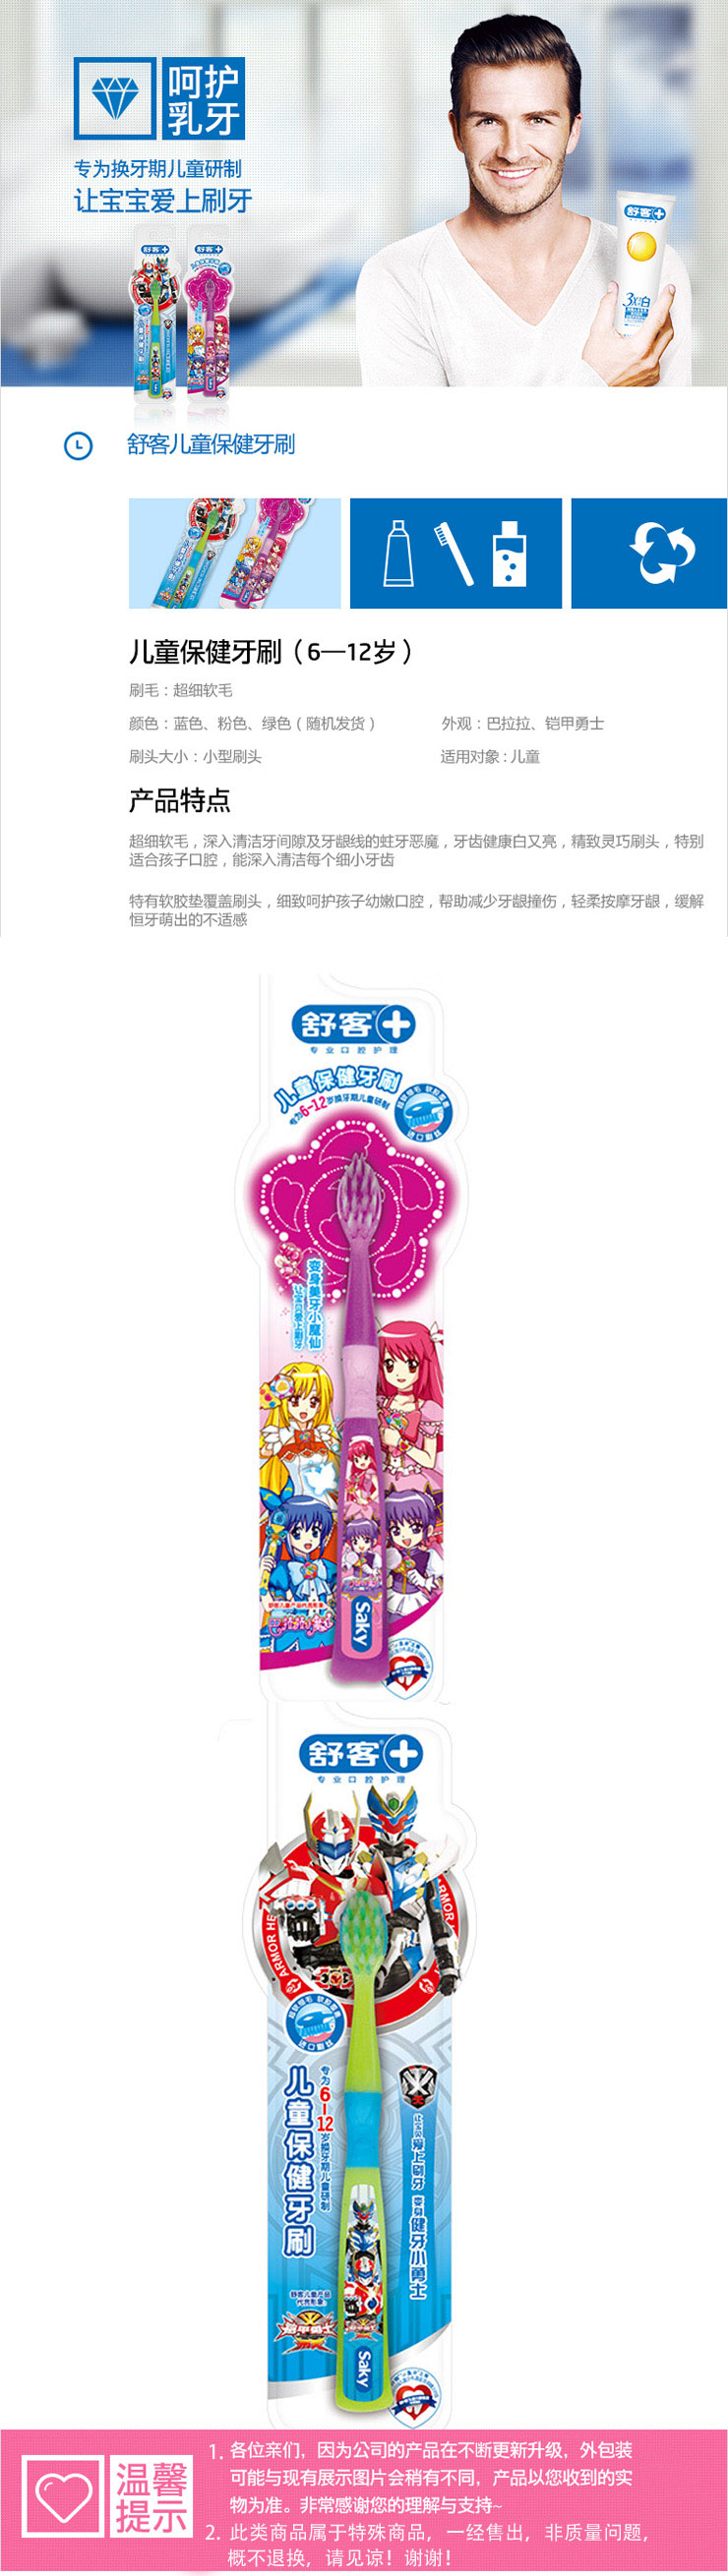 Saky Shu passenger Professional Oral Care Child Care Toothbrush 6 years to 12 years (1 installed)